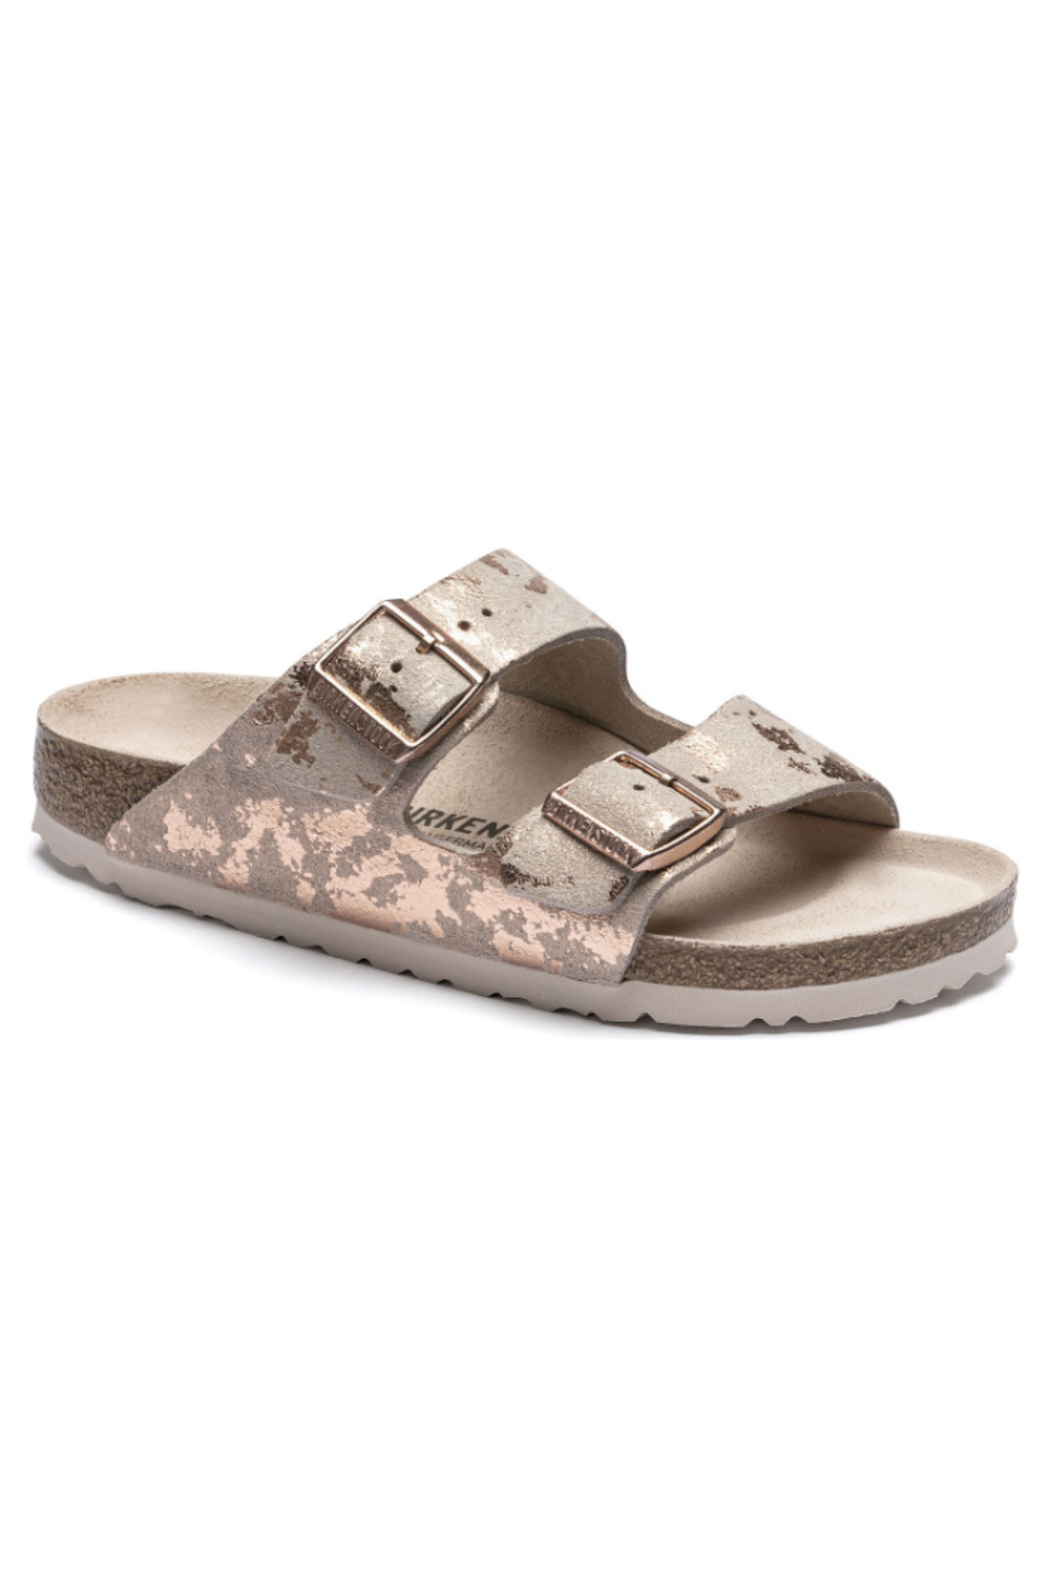 Birkenstock Arizona Suede Leather in Vintage Metallic Rose Copper Medium/Narrow Width - Front Cropped Image